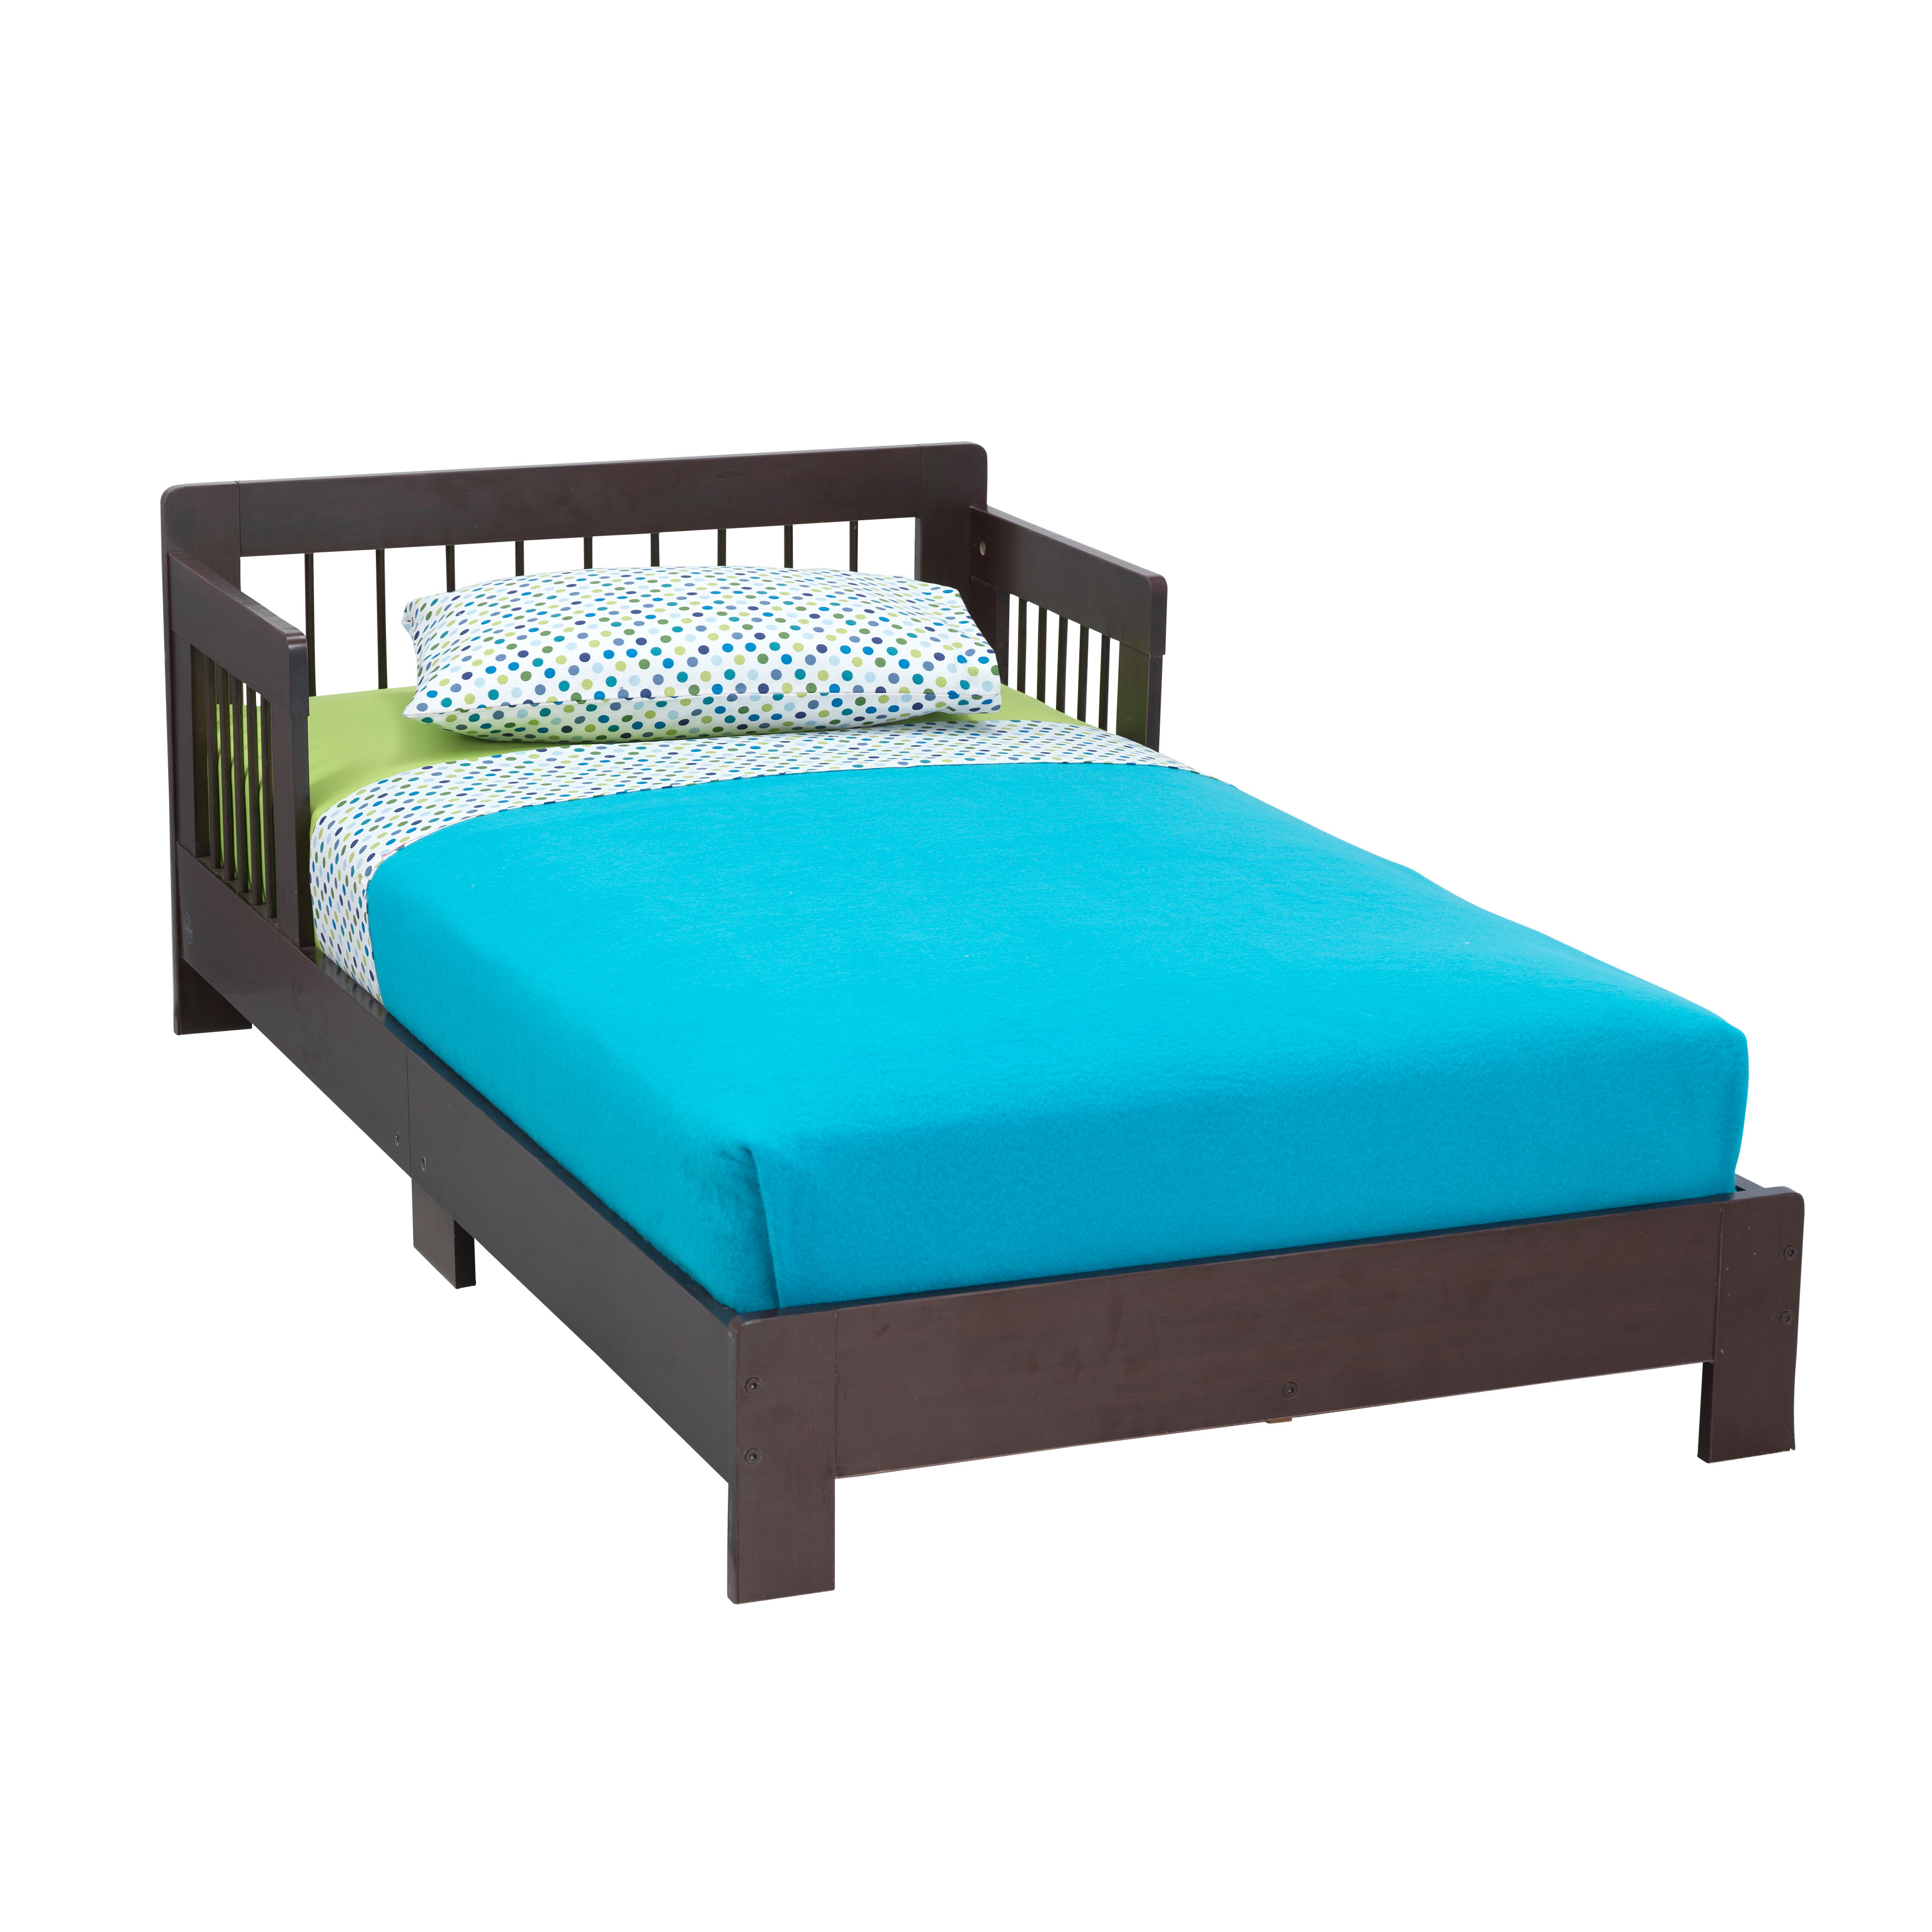 KidKraft Houston Wooden Toddler Bed With Side Rails And Spindle Headboard    Espresso   Walmart.com